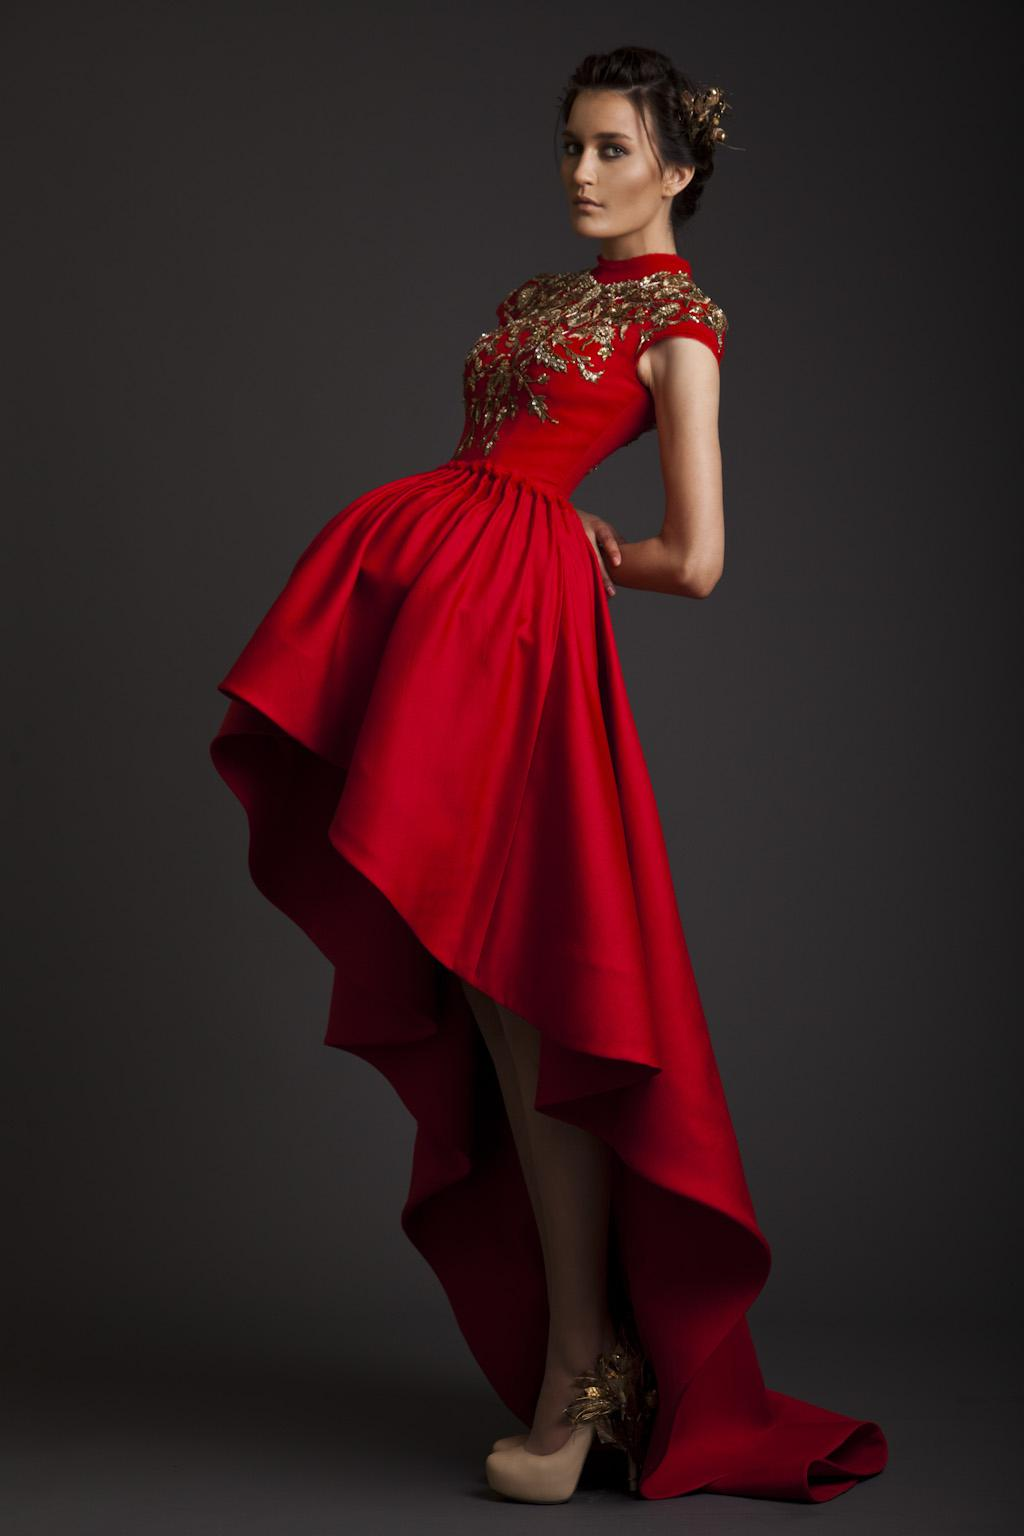 Discount 2014 wedding dresses a line high neck red online with $129.11/piece